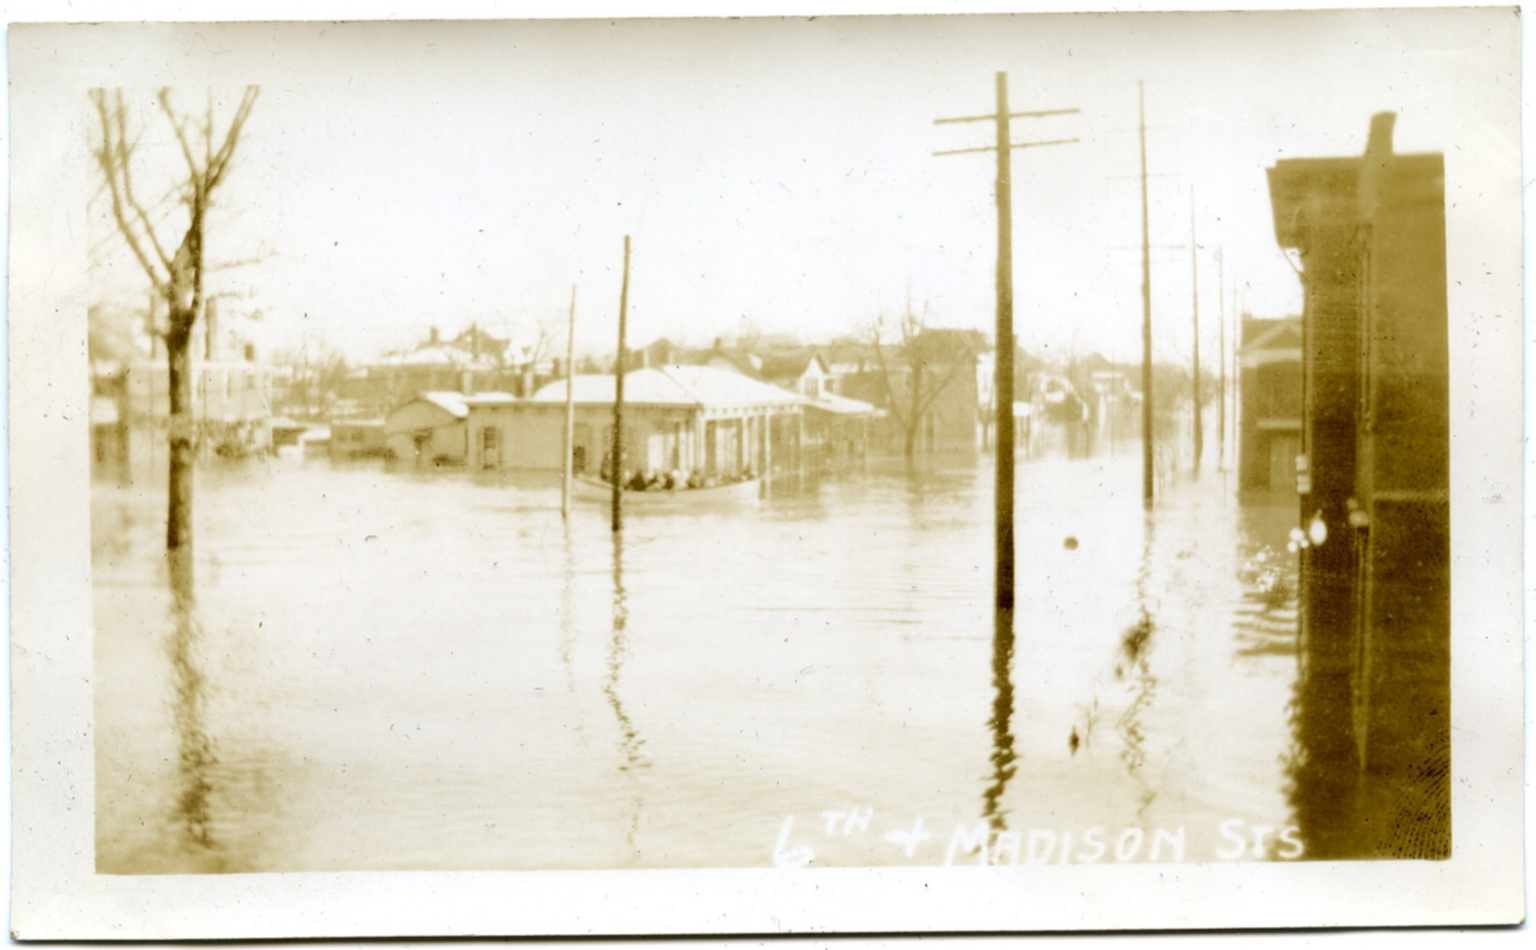 Smedley-Yeiser house in Lowertown during '37 flood.